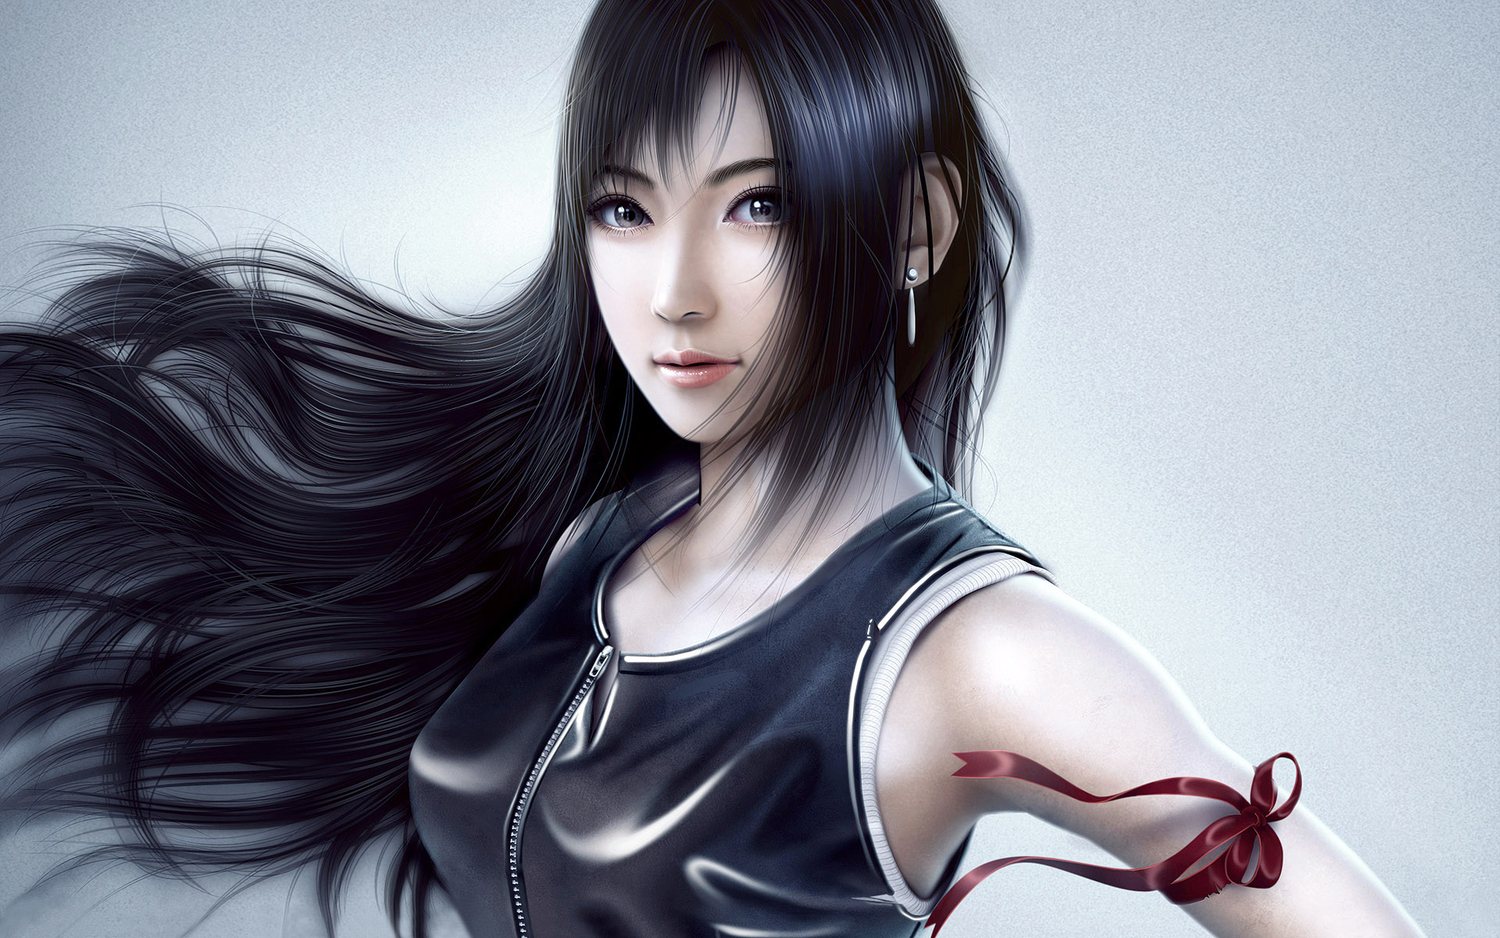 black_eyes black_hair final_fantasy final_fantasy_vii realistic ribbons tifa_lockhart